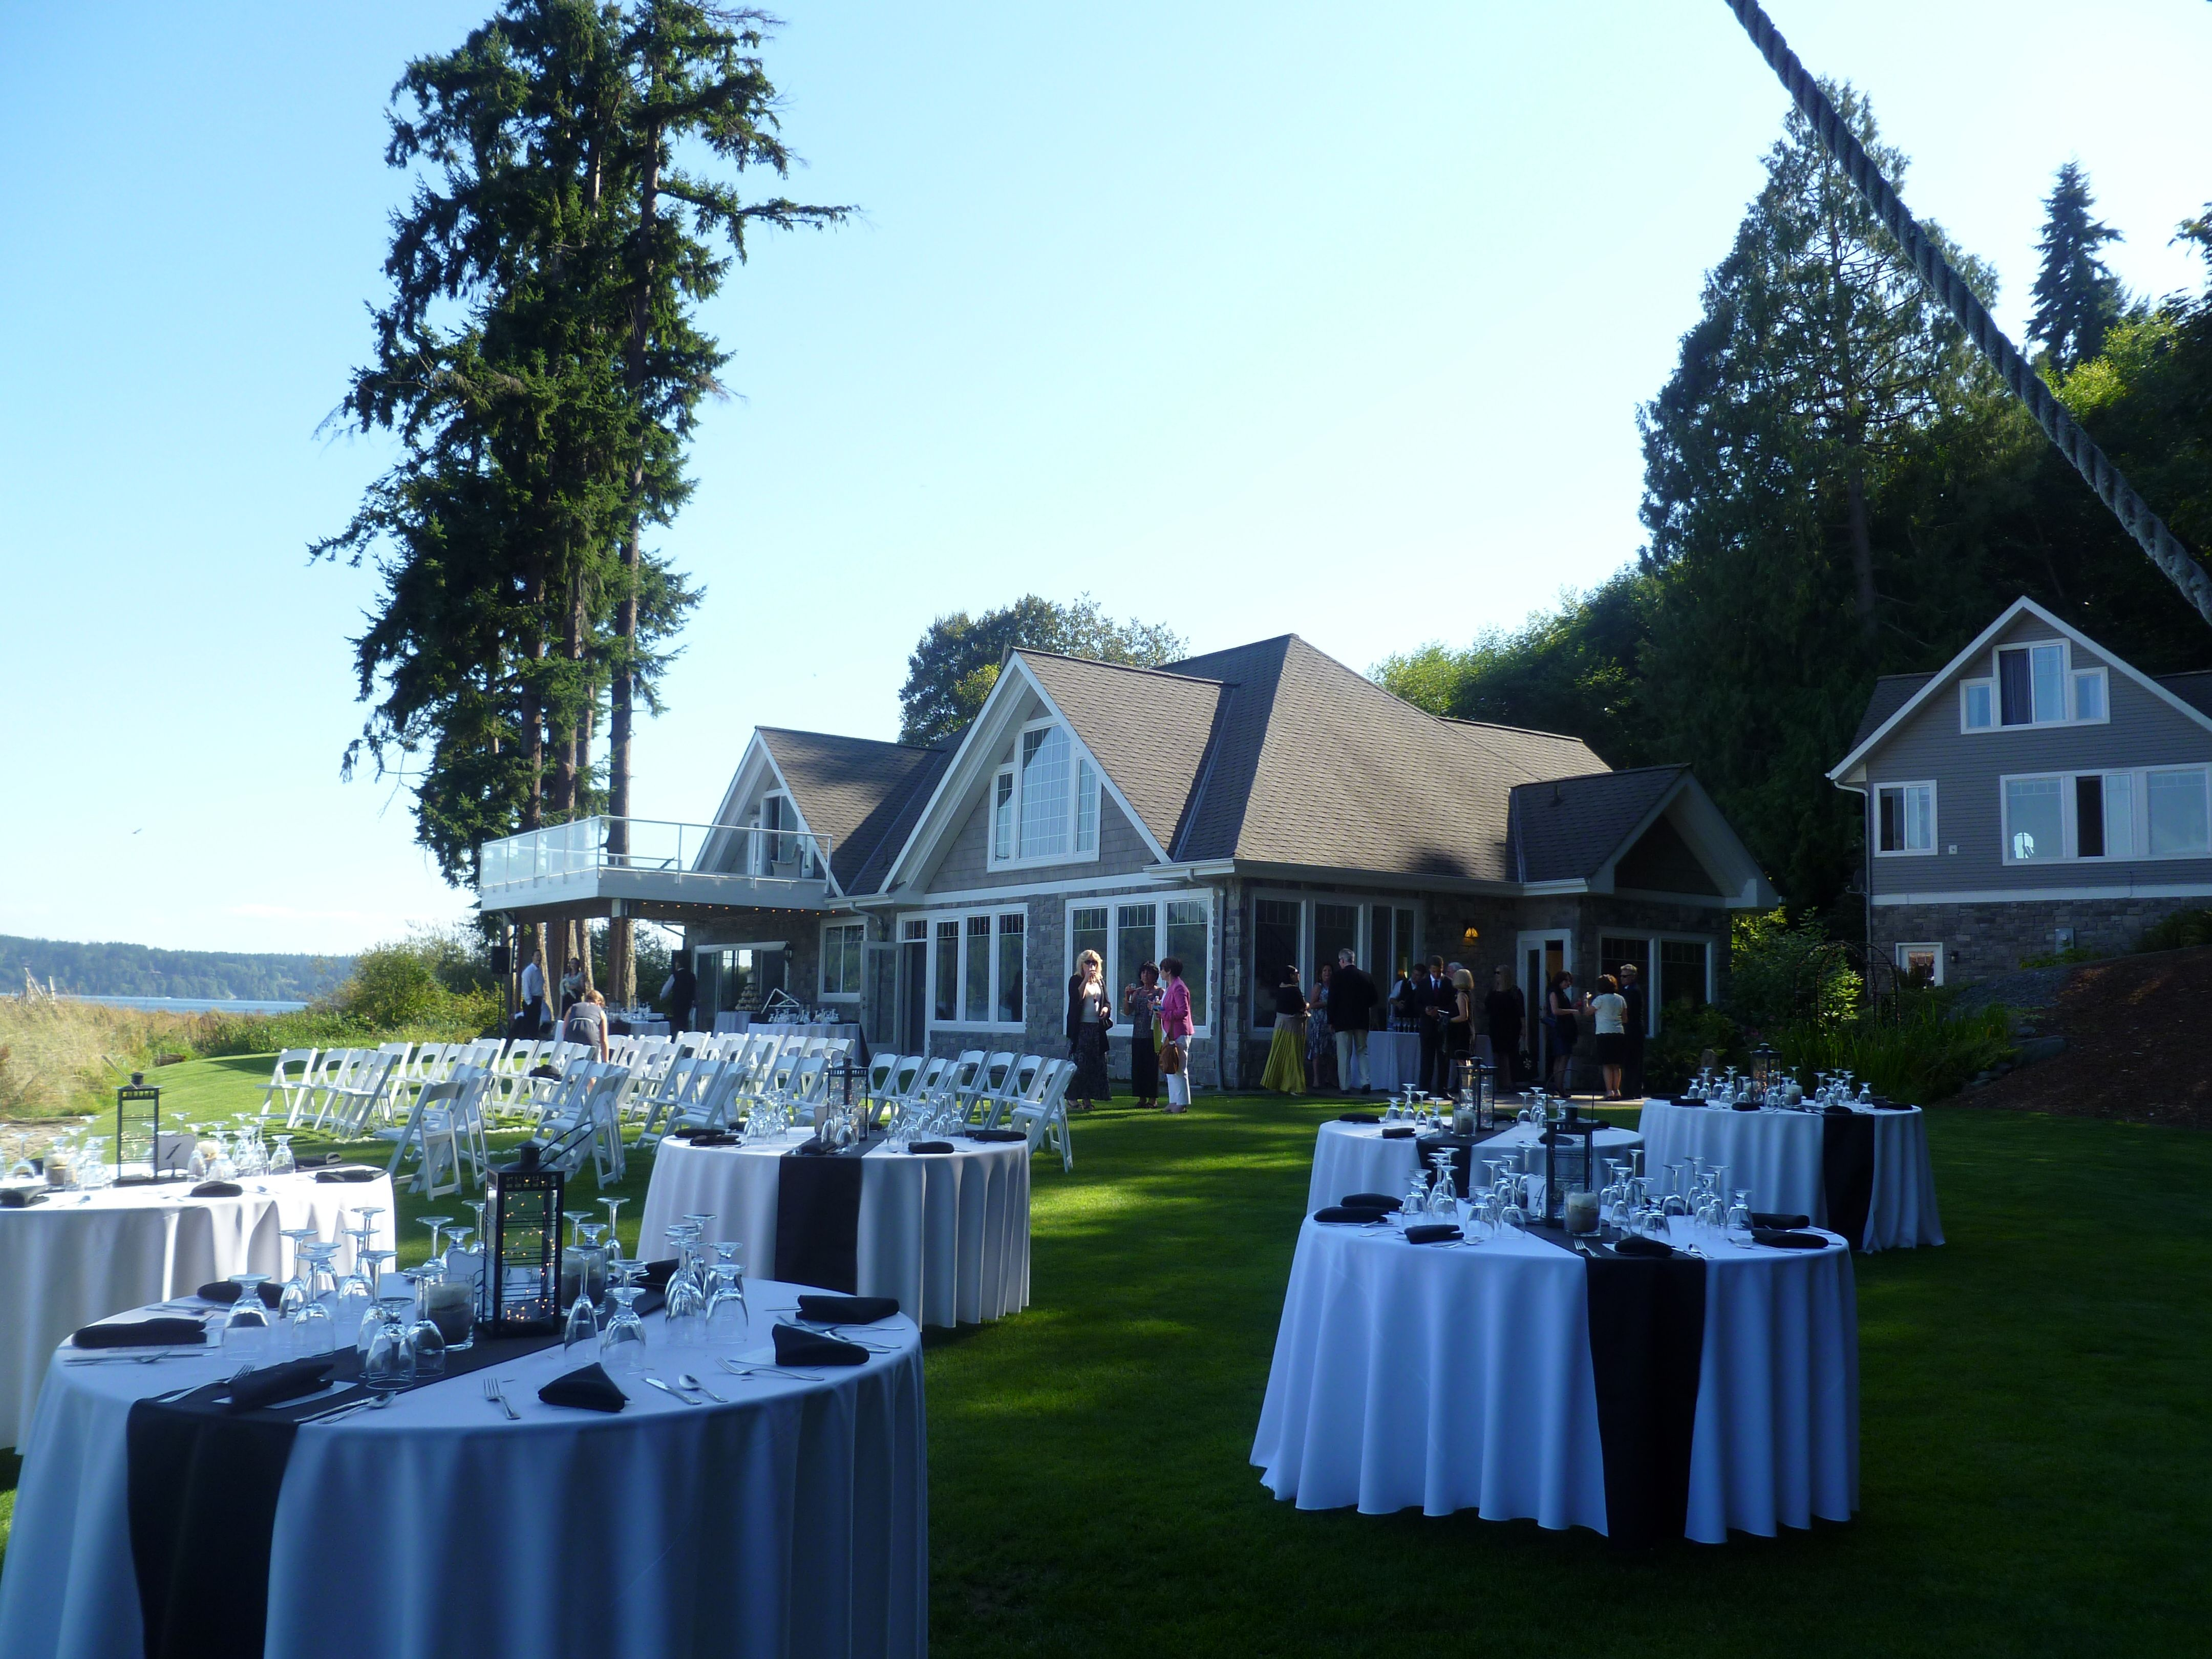 A Beautiful Day At The Edgewater House Wedding And Event Venue